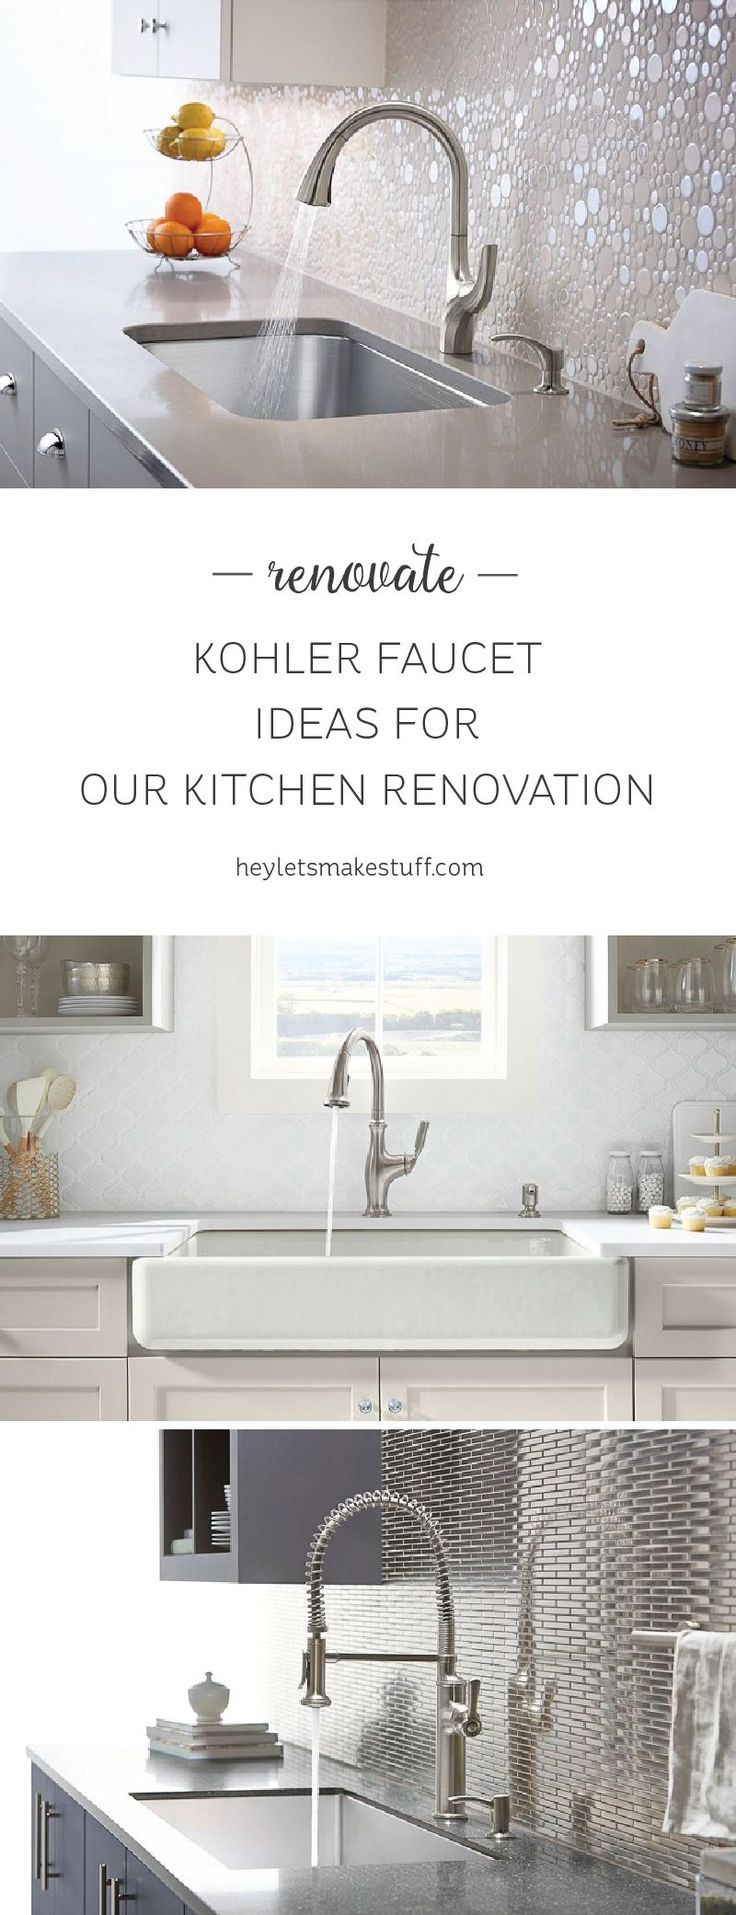 Thanks to Kohler, we're planning our kitchen renovation and today I'm talking faucets! Here are three of the Kohler faucets we're thinking about getting. #ad